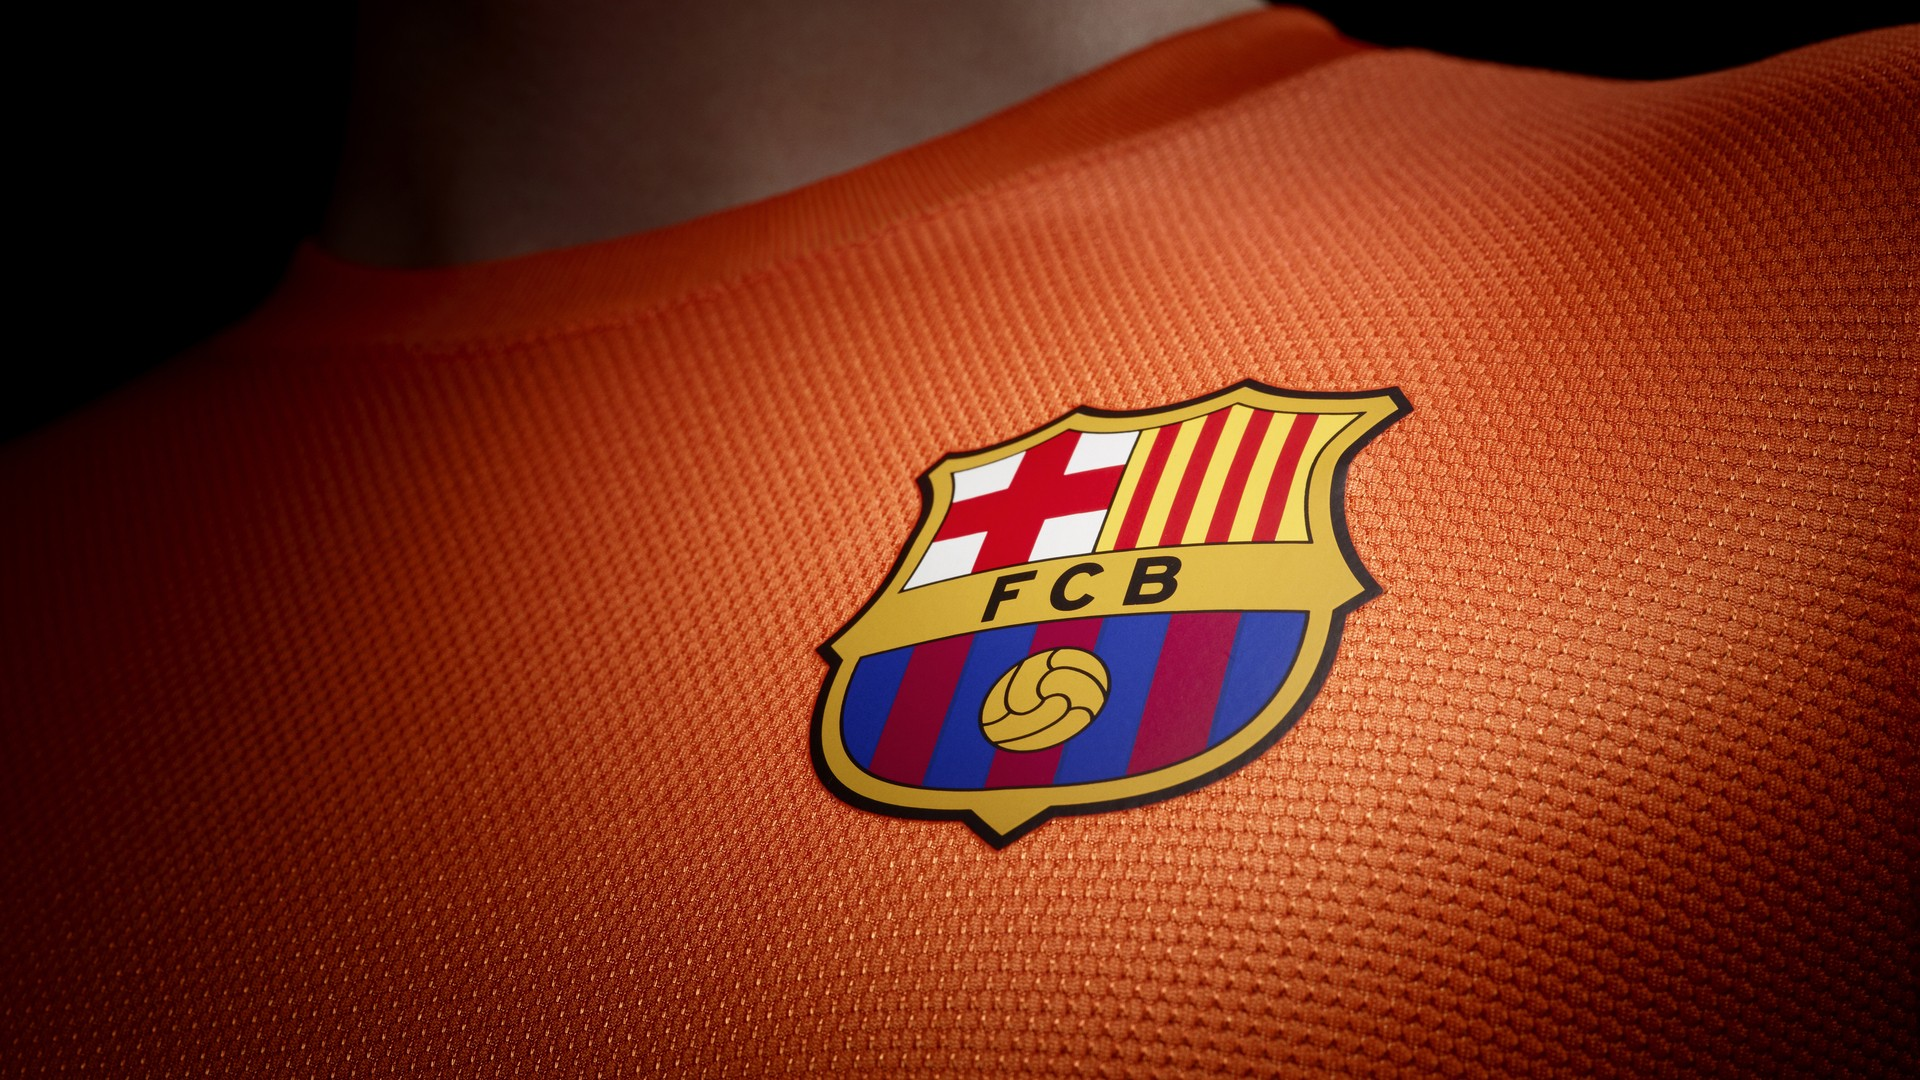 Barcelona-Jersey-Patch-wallpaper-wpc9202758